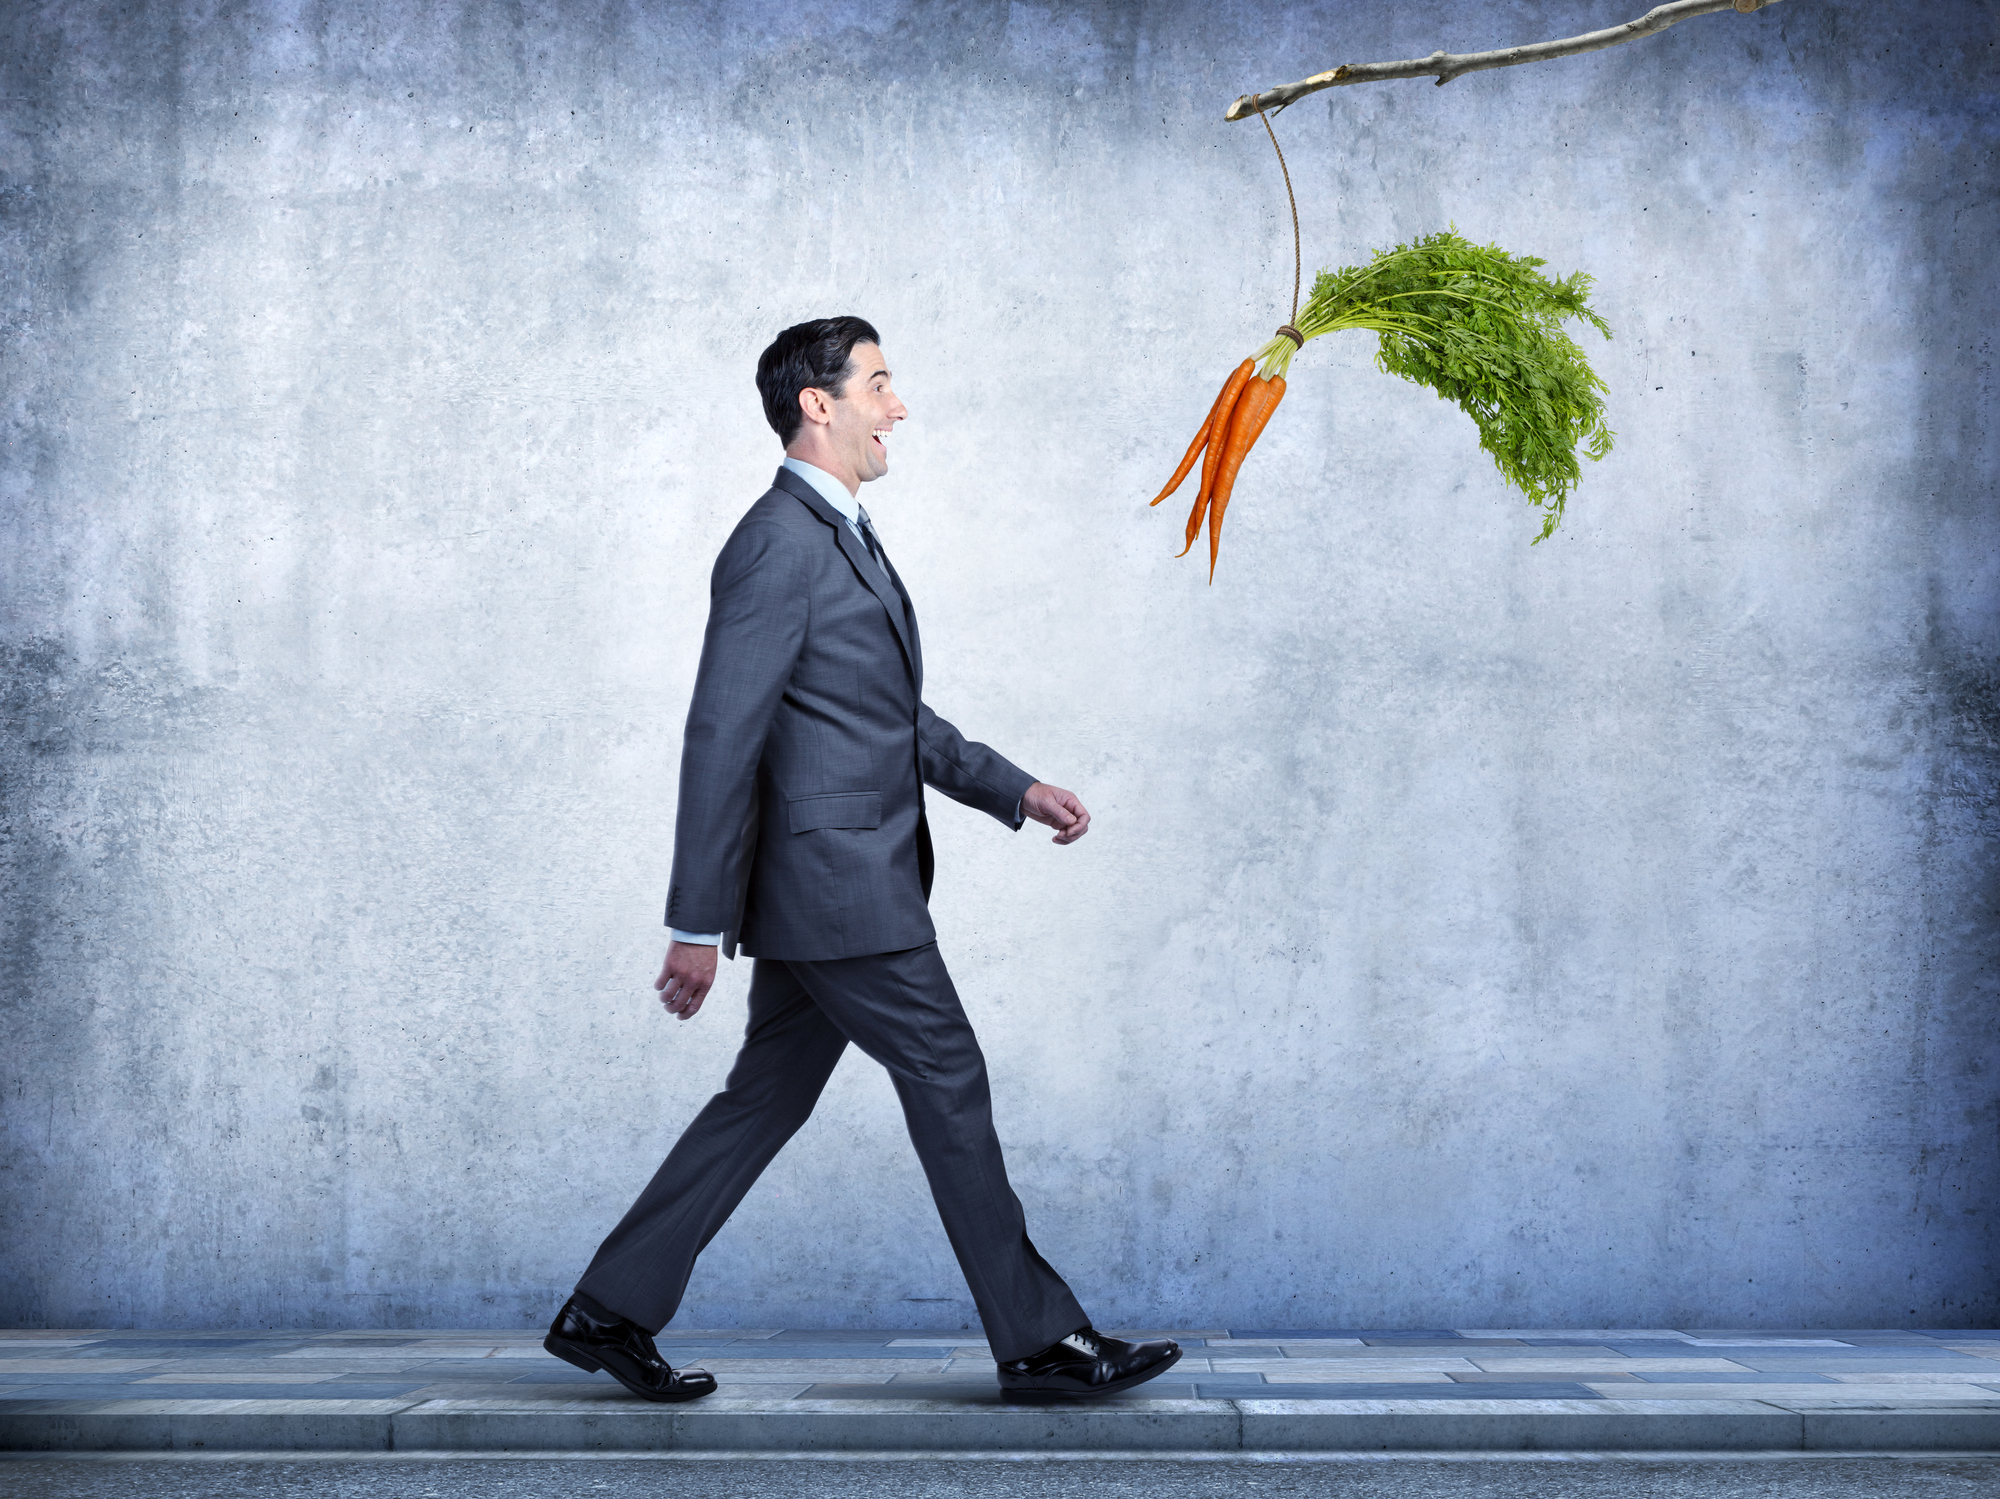 A businessman, walking along a sidewalk, happily follows a bunch of carrots that are dangling from a stick. The carrots are his motivation as he works his way through his day.